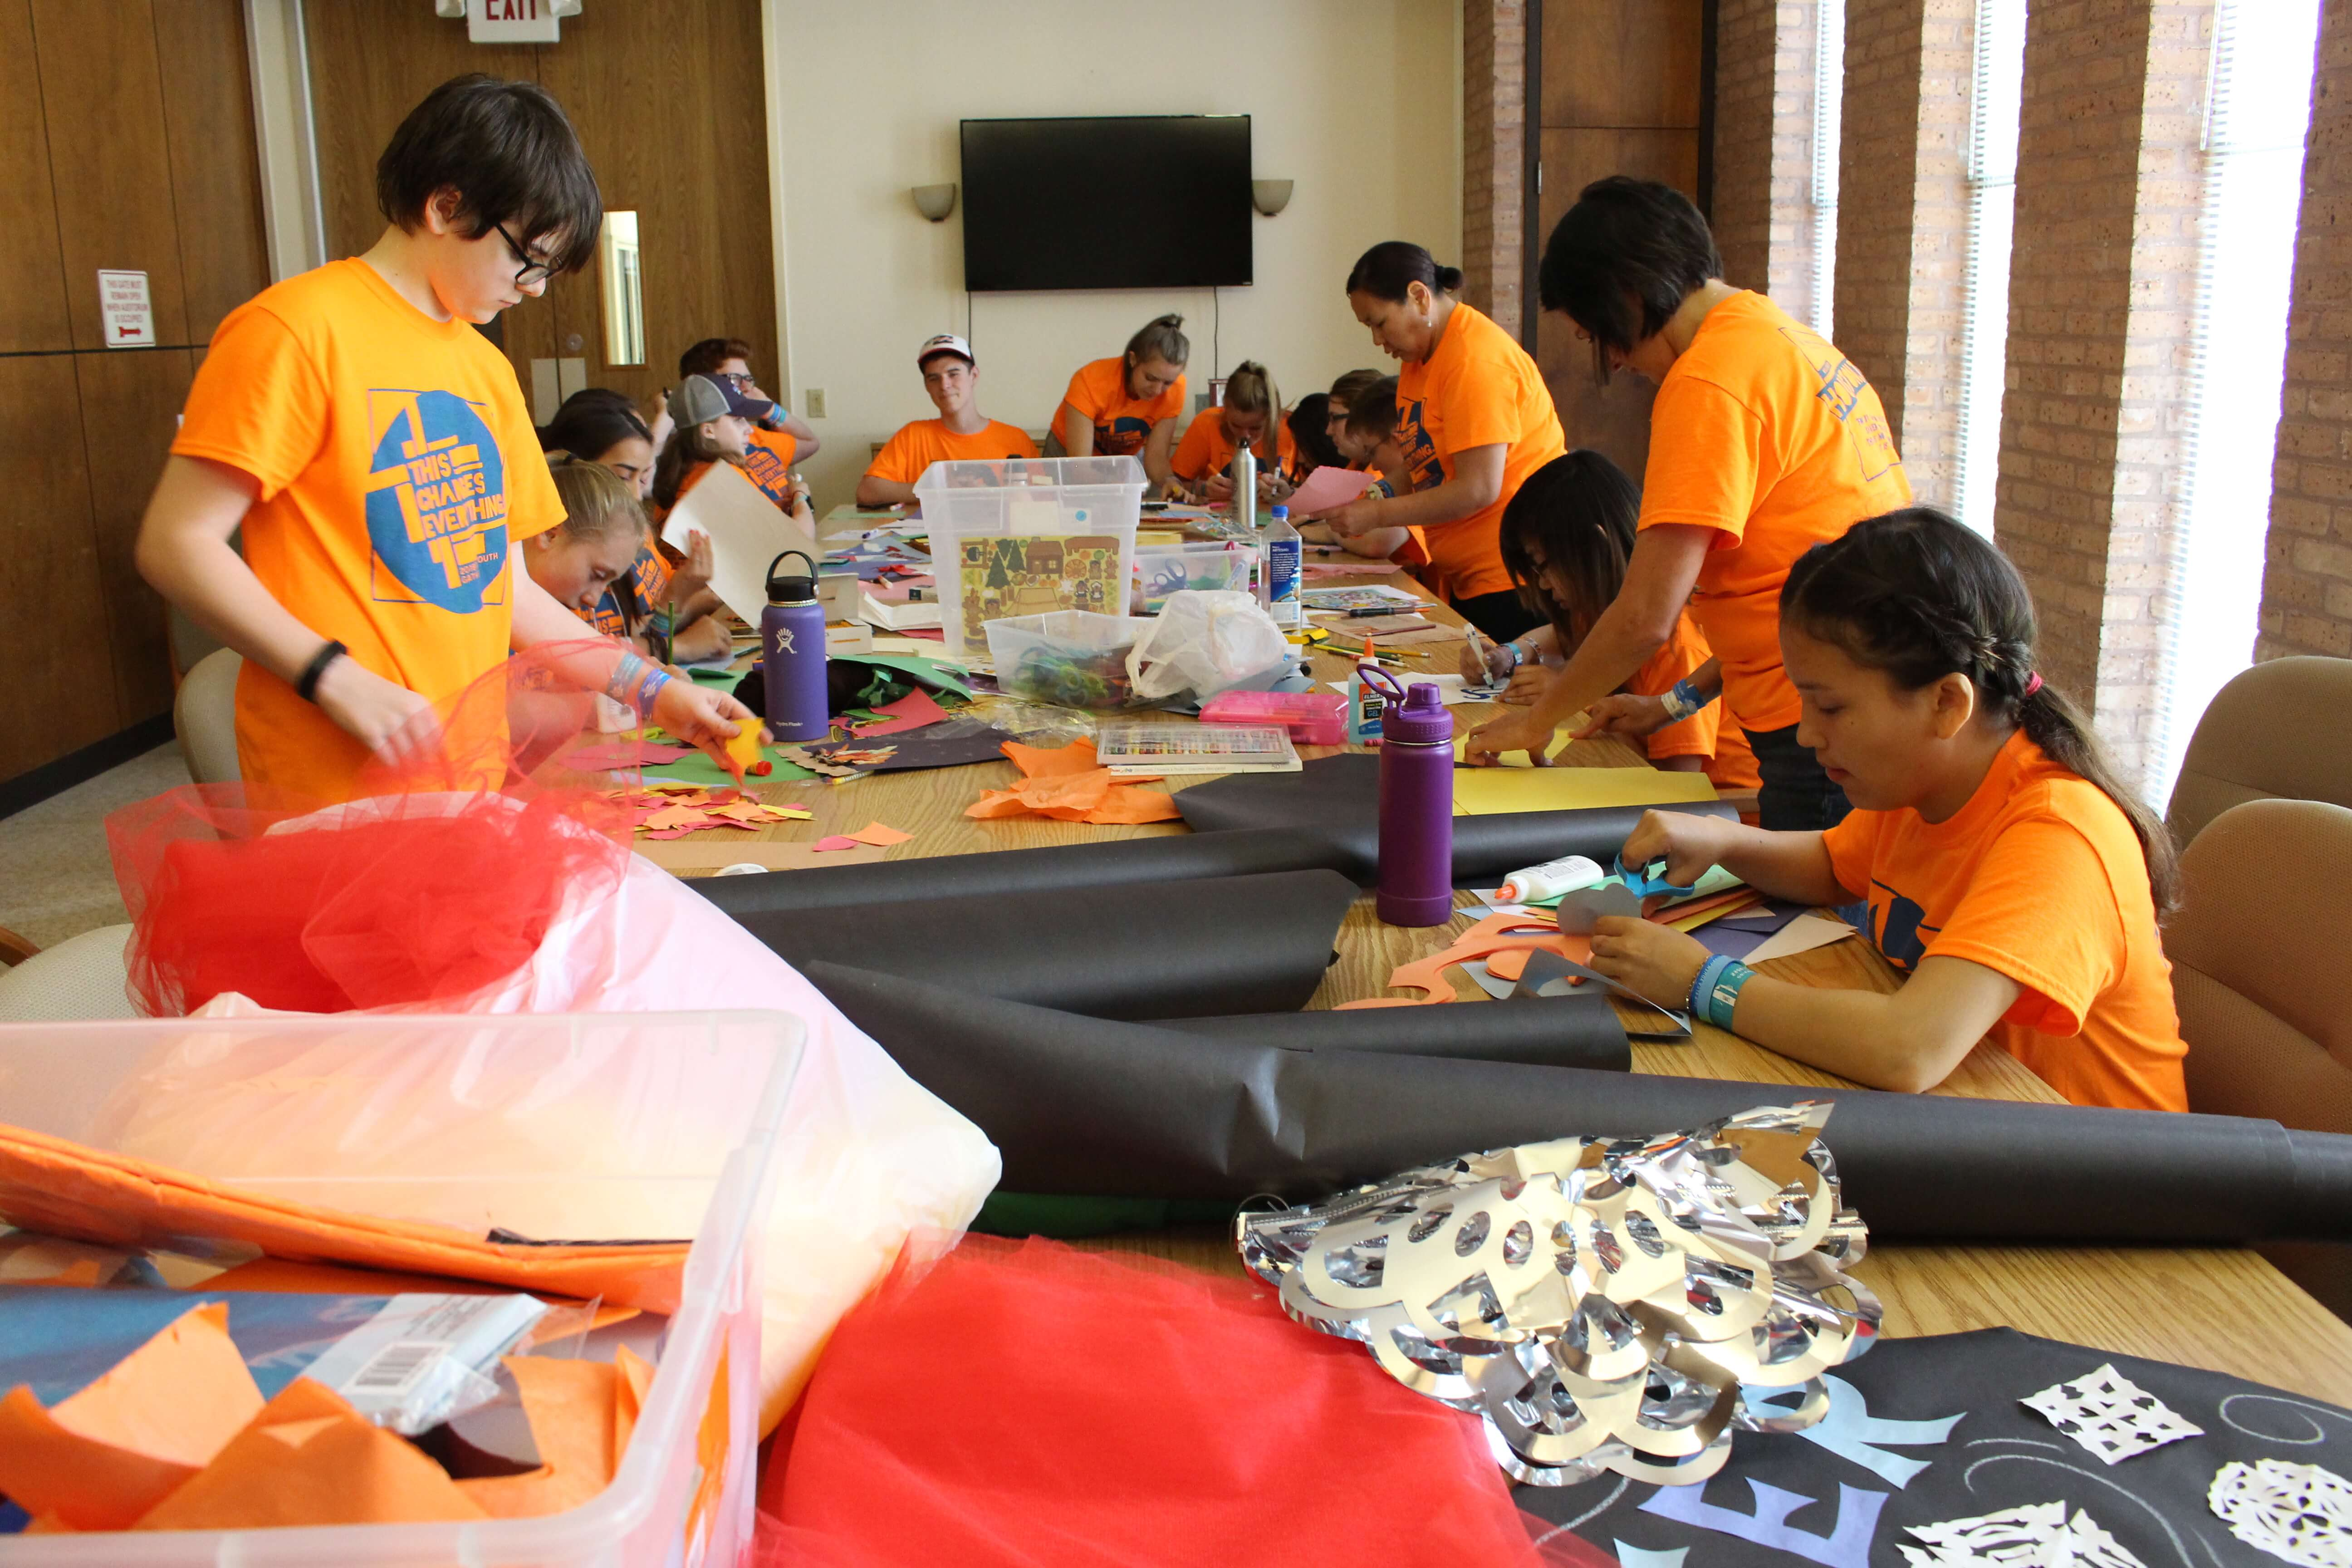 Volunteers from the Evangelical Lutheran Church in America's triennial Youth Gathering convening in Houston in June 2018 spent two days cleaning the school at The Center for Hearing and Speech and turning the agency's summer camp area into a superhero sanctum. (Photo contributed by The Center for Hearing and Speech)